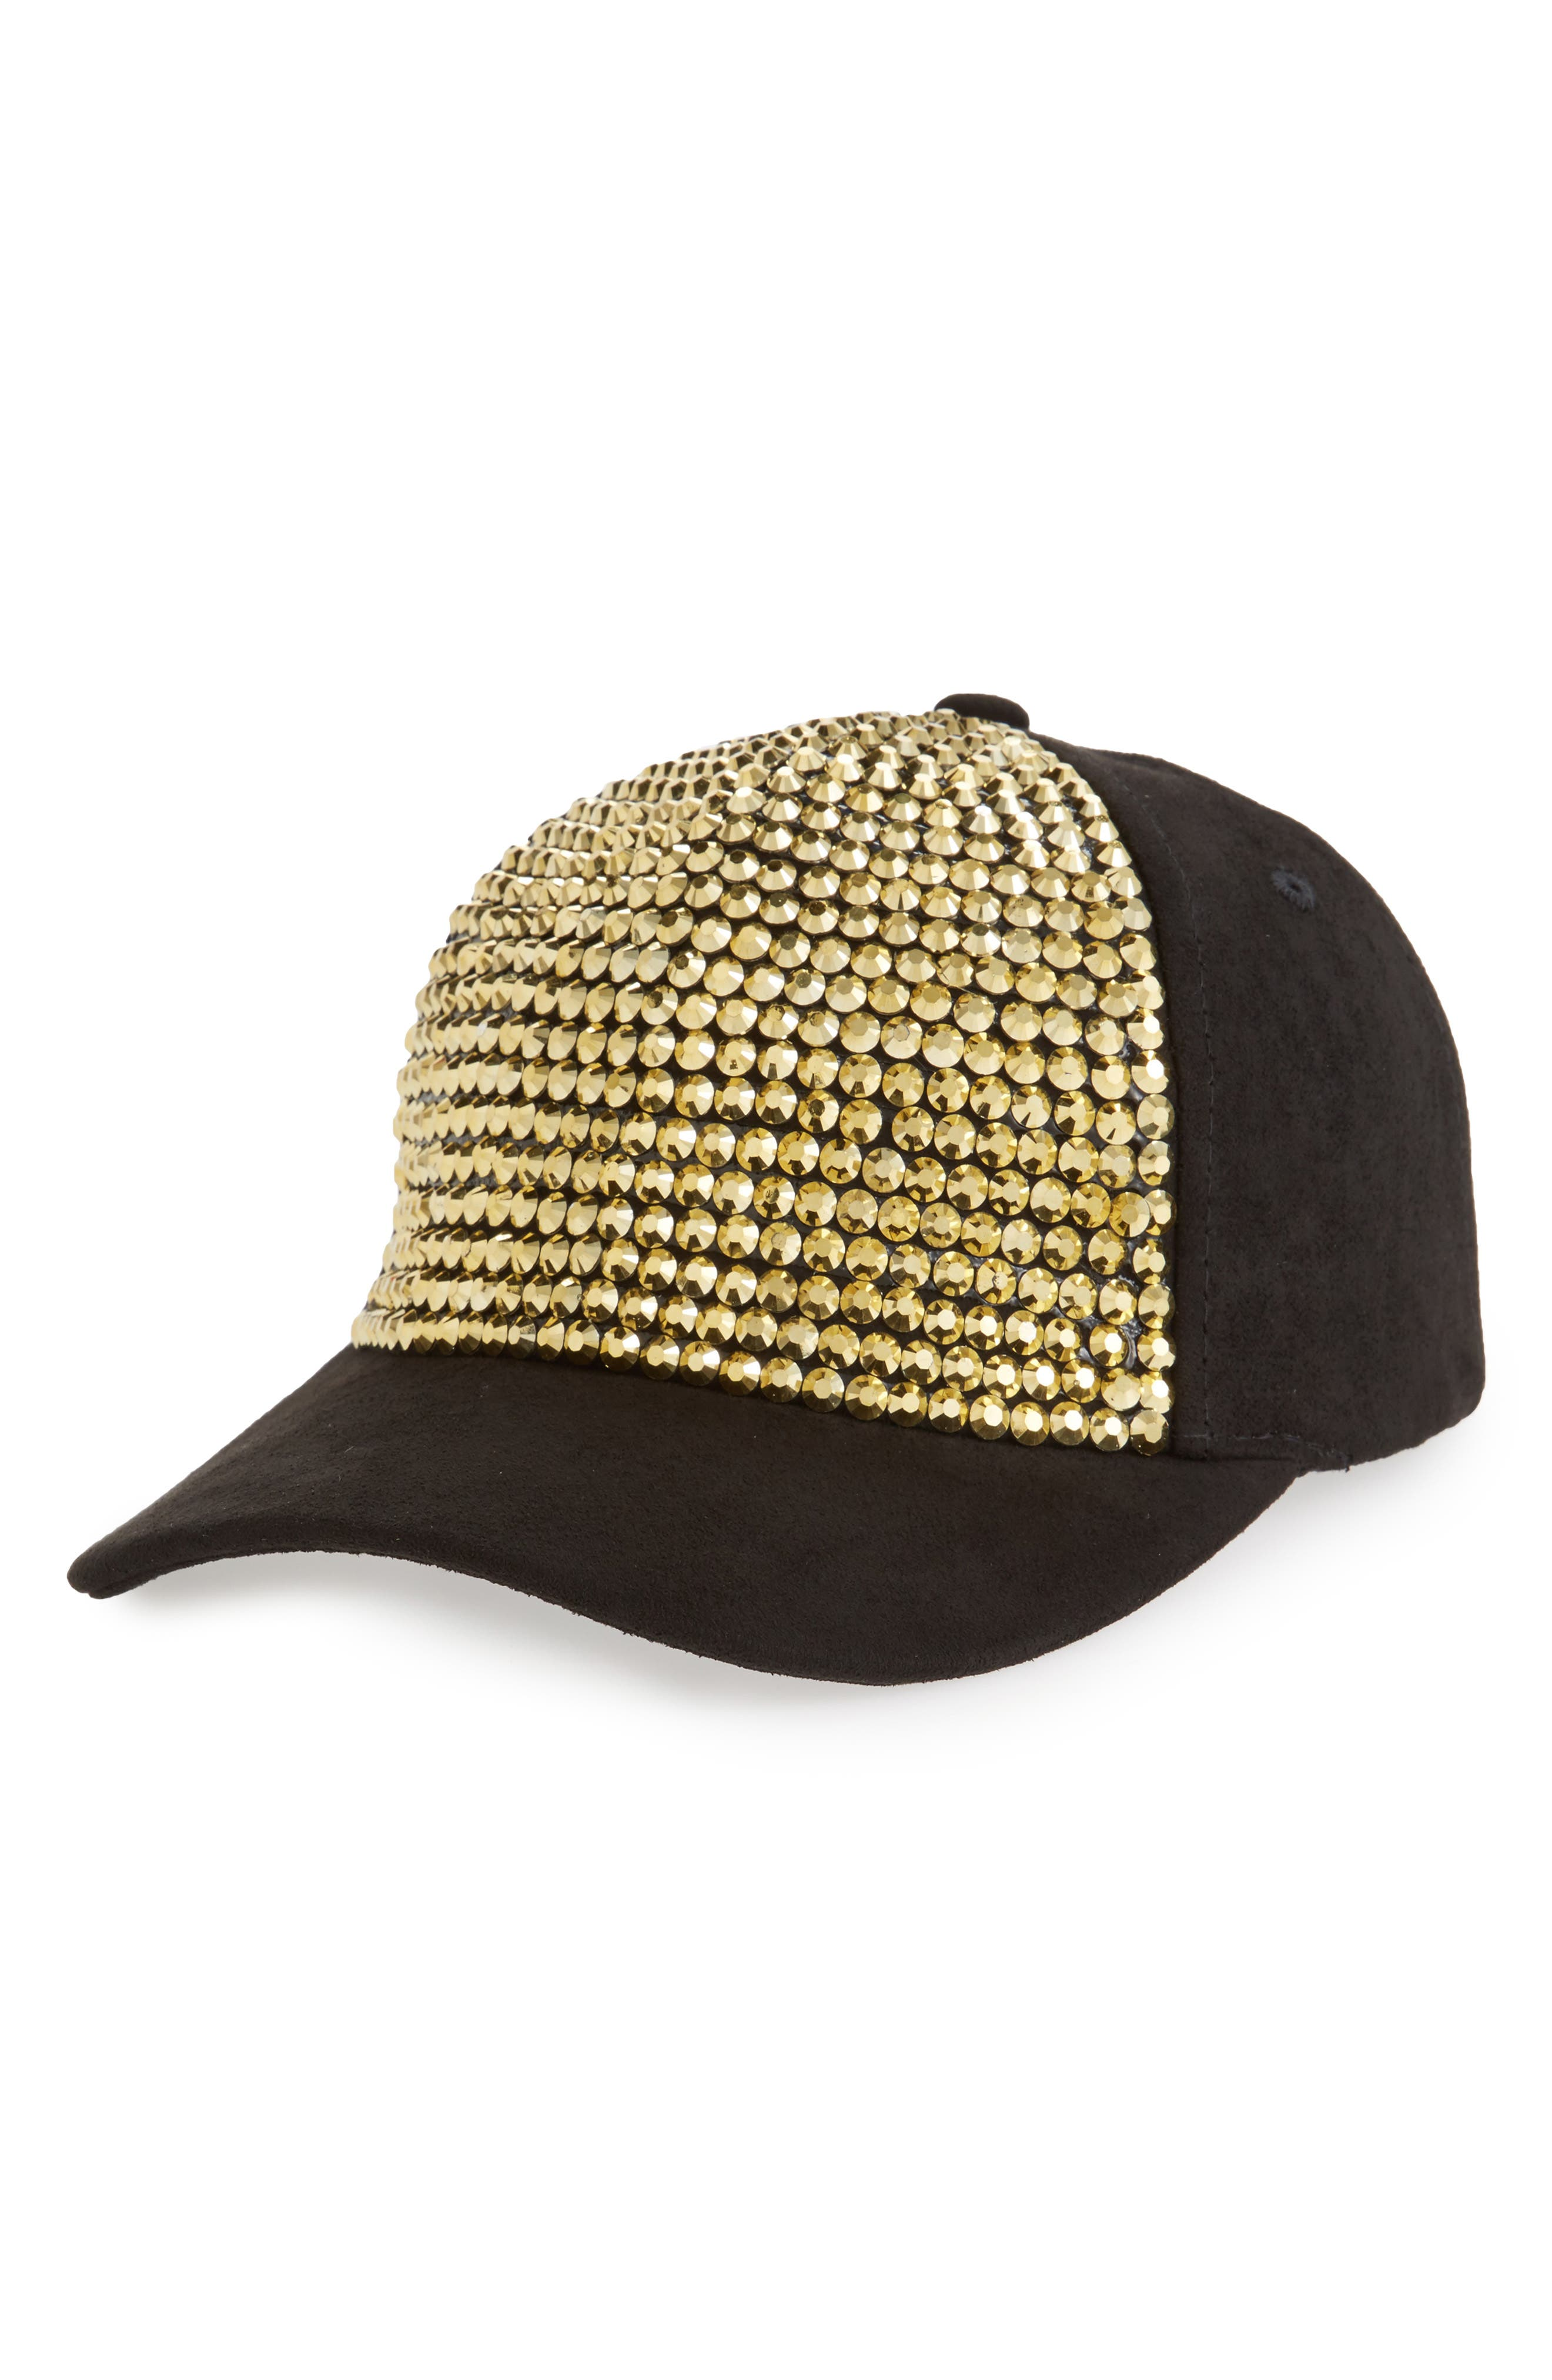 Amici Accessories Crystal Studded Ball Cap